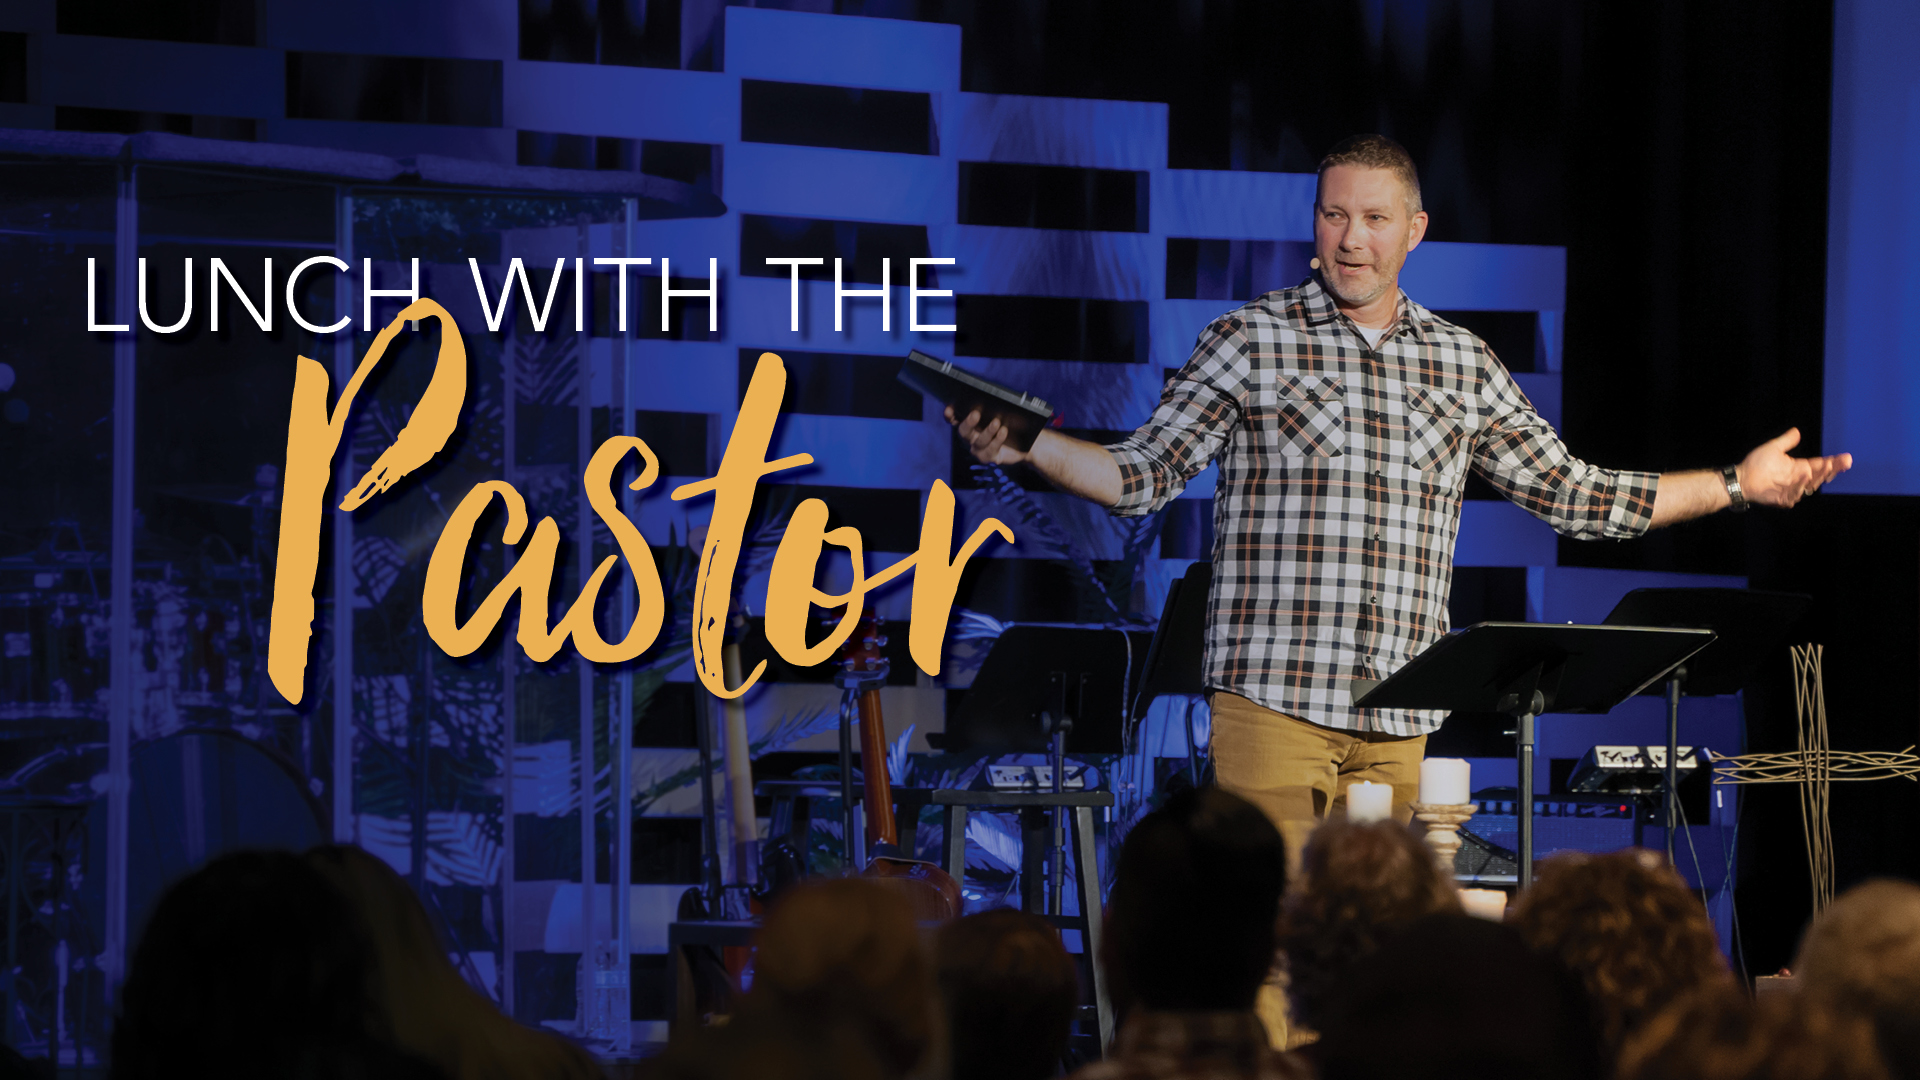 Lunch with Pastor Eric Camfield